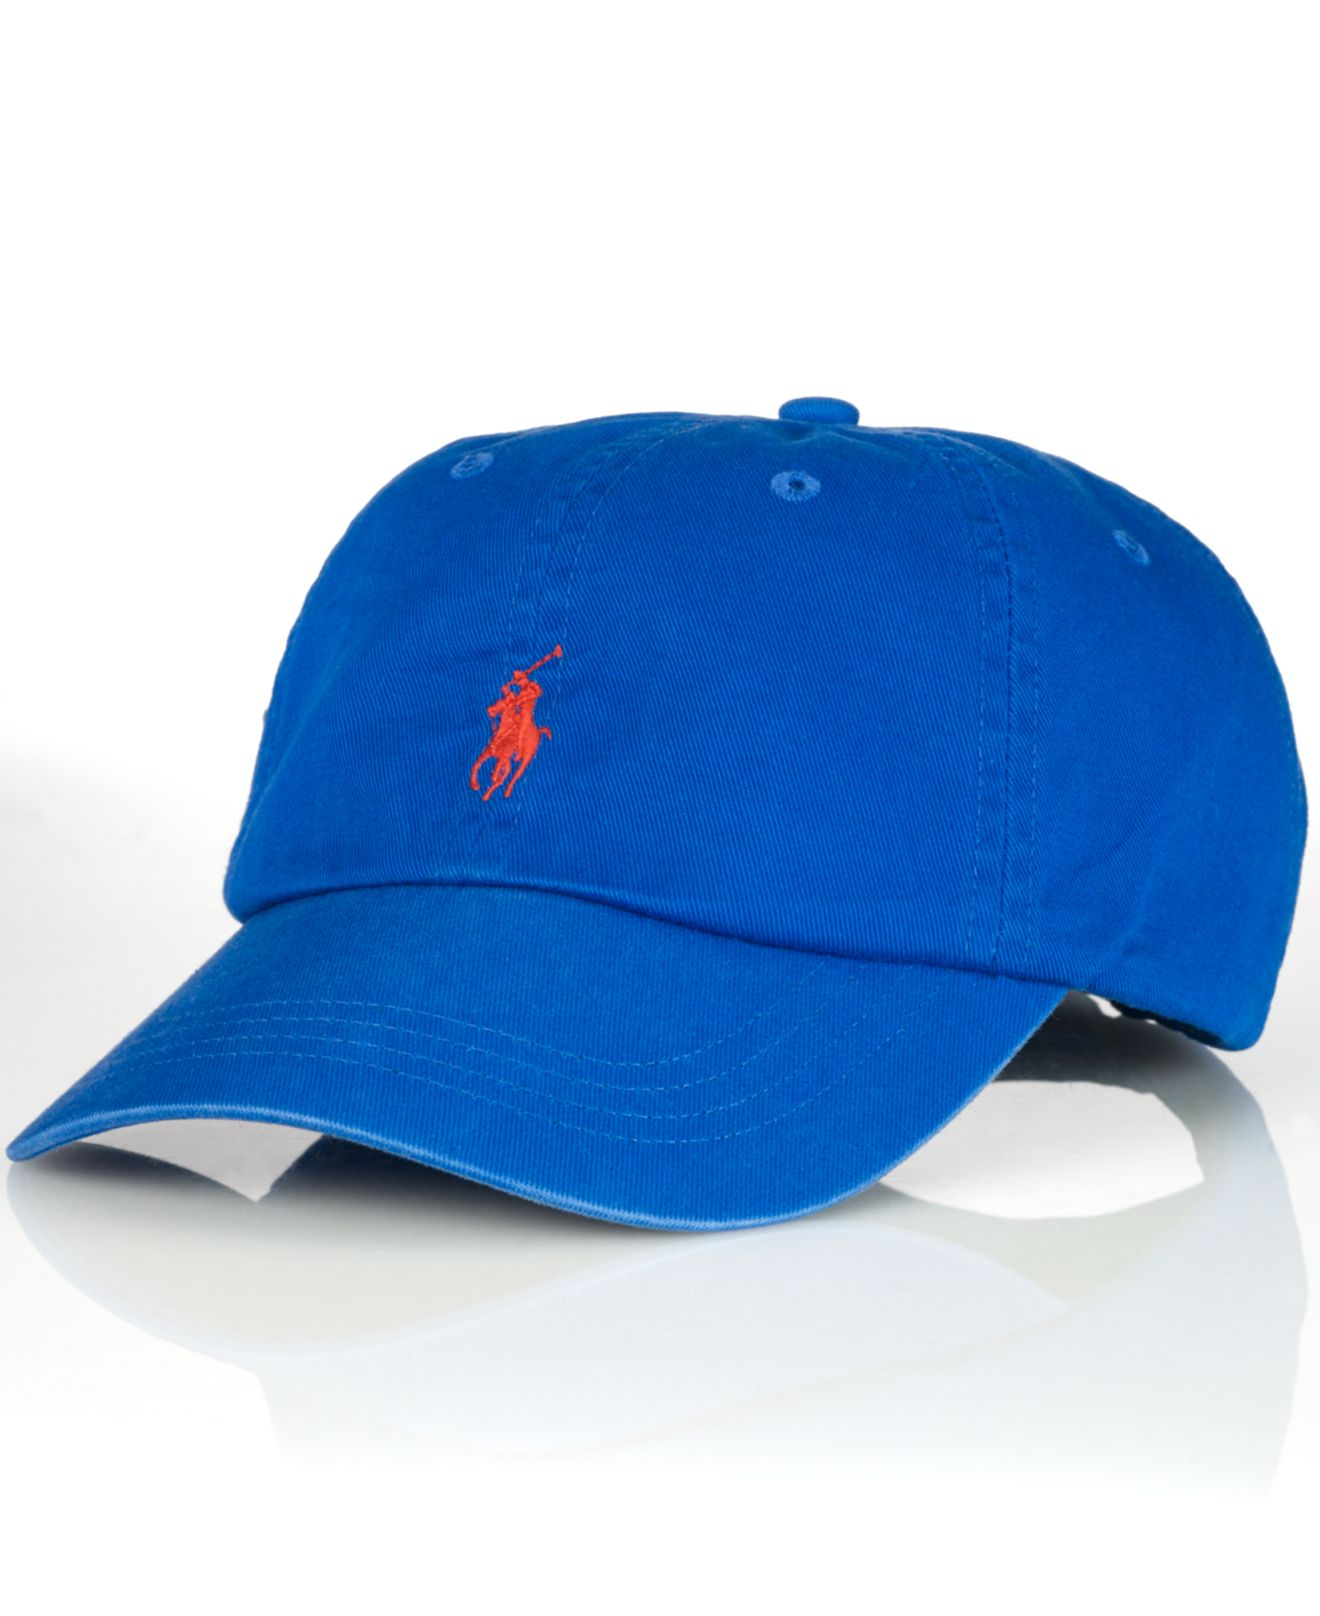 cb7b238f0ee ... sweden lyst polo ralph lauren classic chino sports cap in blue for men  f760f a8fdf